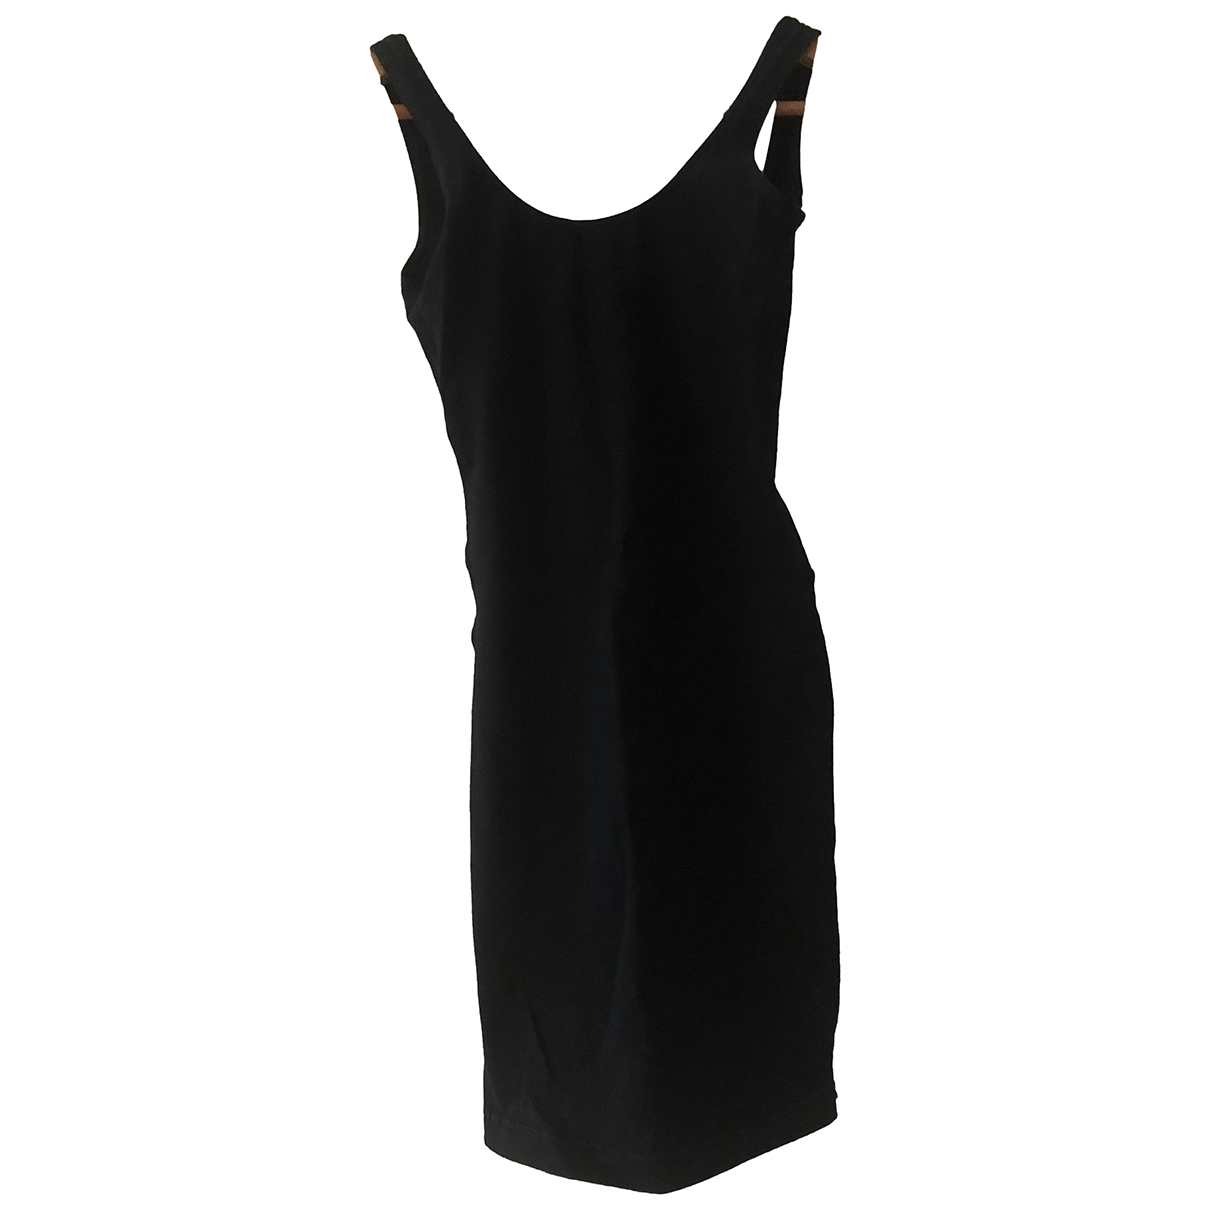 American Apparel N Black Cotton dress for Women S International